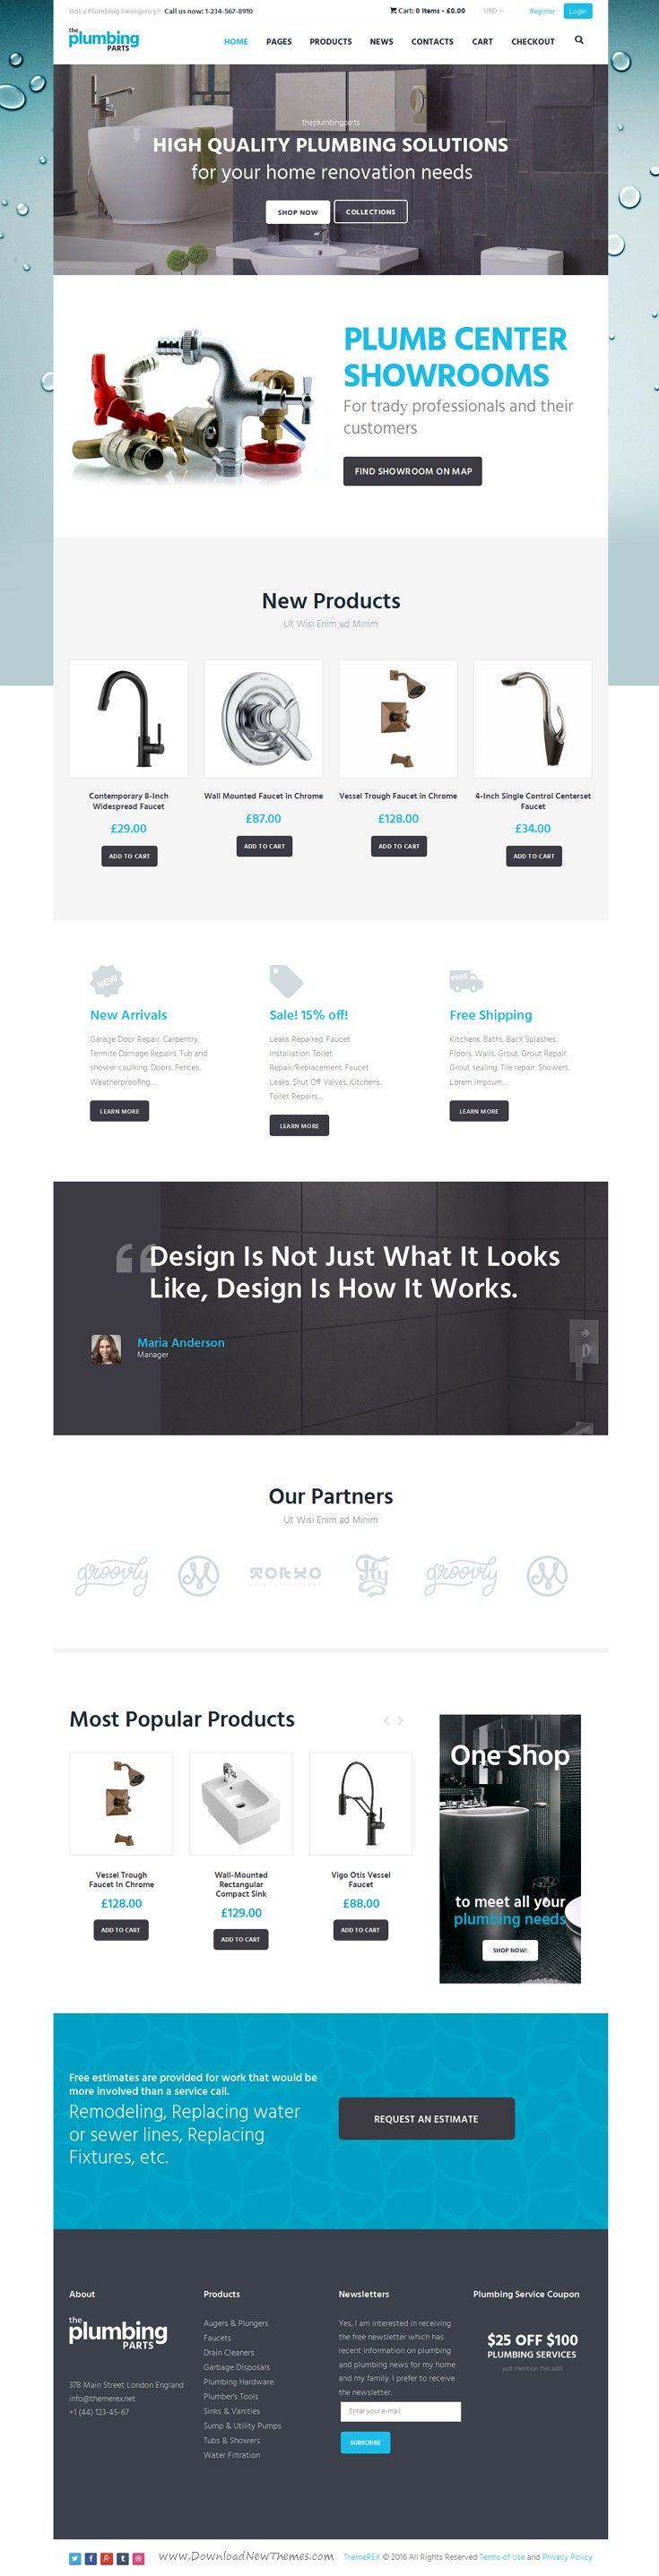 Beautiful responsive WordPress #eCommerce theme for any home repair and maintenance business: #plumbing, carpentry, remodeling & renovation, construction #website. Download Now!